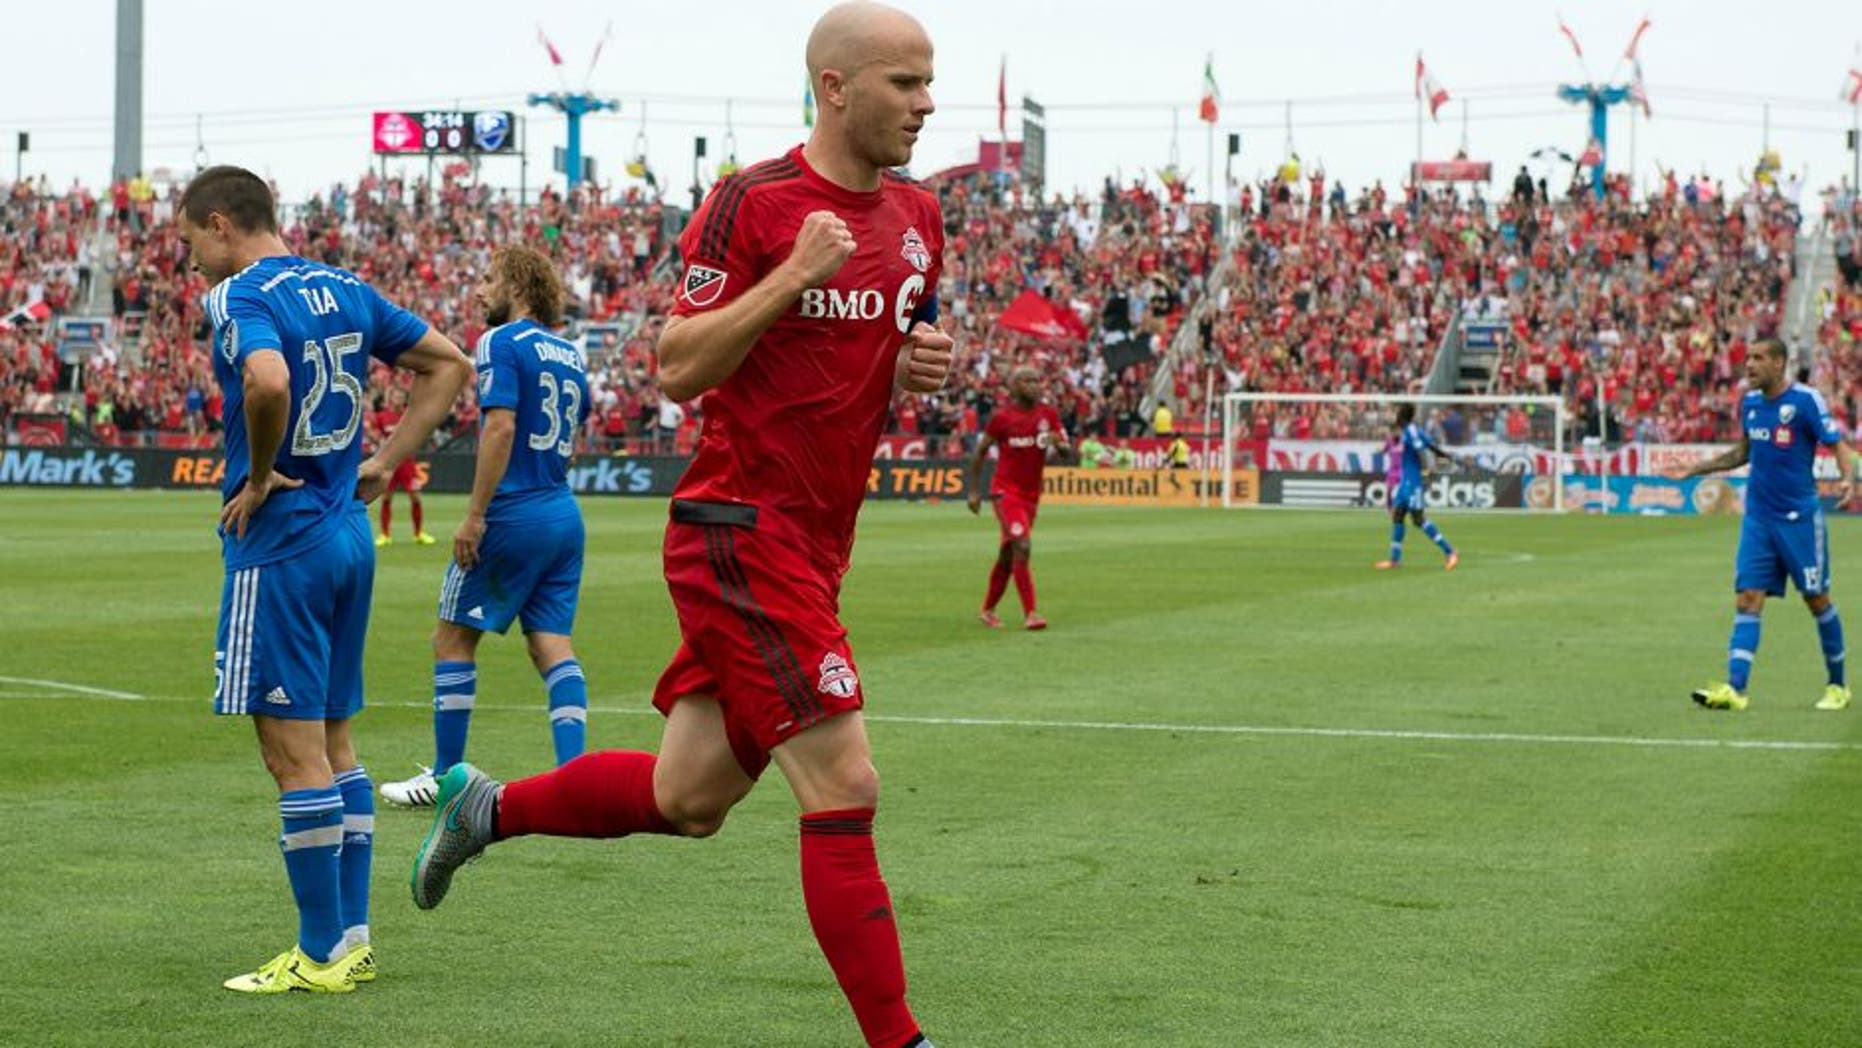 Aug 29, 2015; Toronto, Ontario, CAN; Toronto FC midfielder Michael Bradley (4) celebrates after scoring a goal during the first half in a game against the Montreal Impact at BMO Field. Mandatory Credit: Nick Turchiaro-USA TODAY Sports